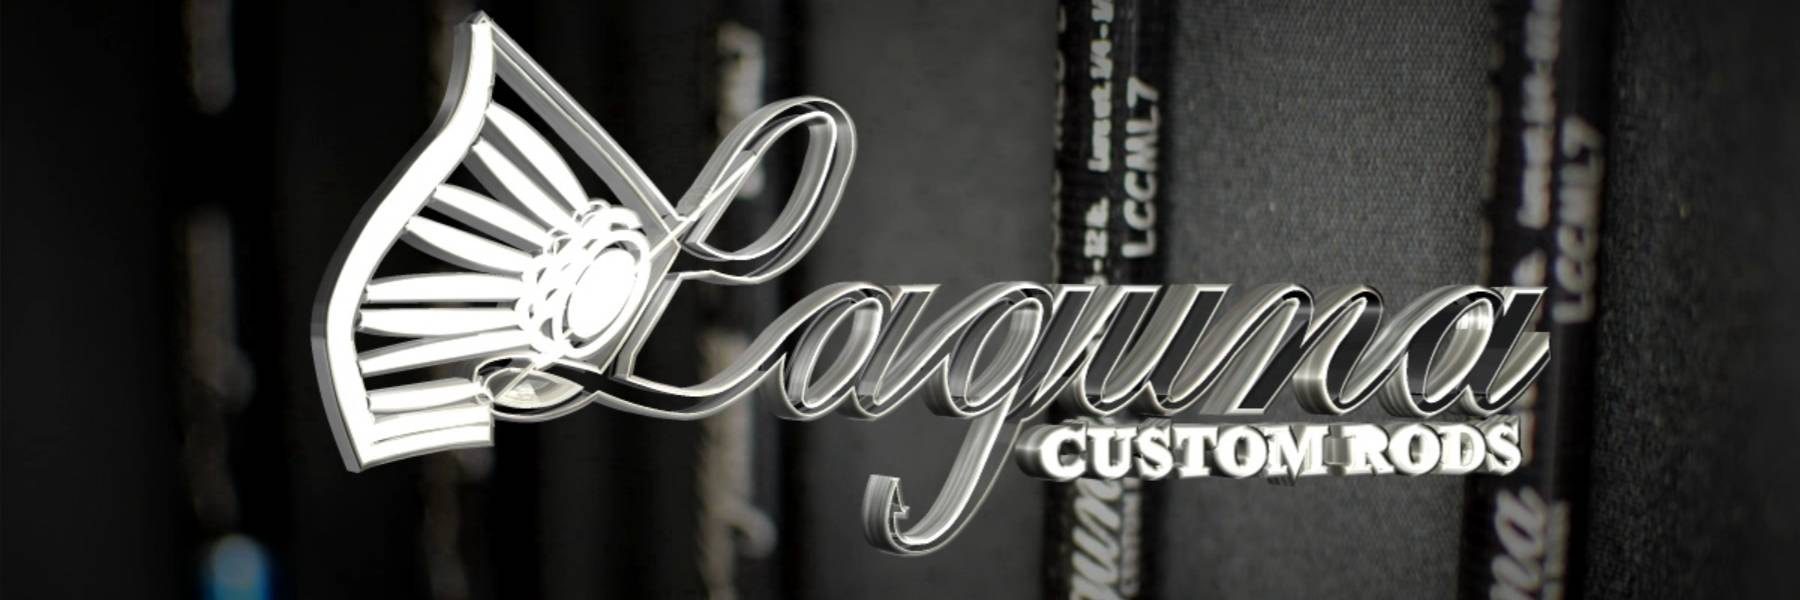 Order Your Reel Time Laguna Rod Here!